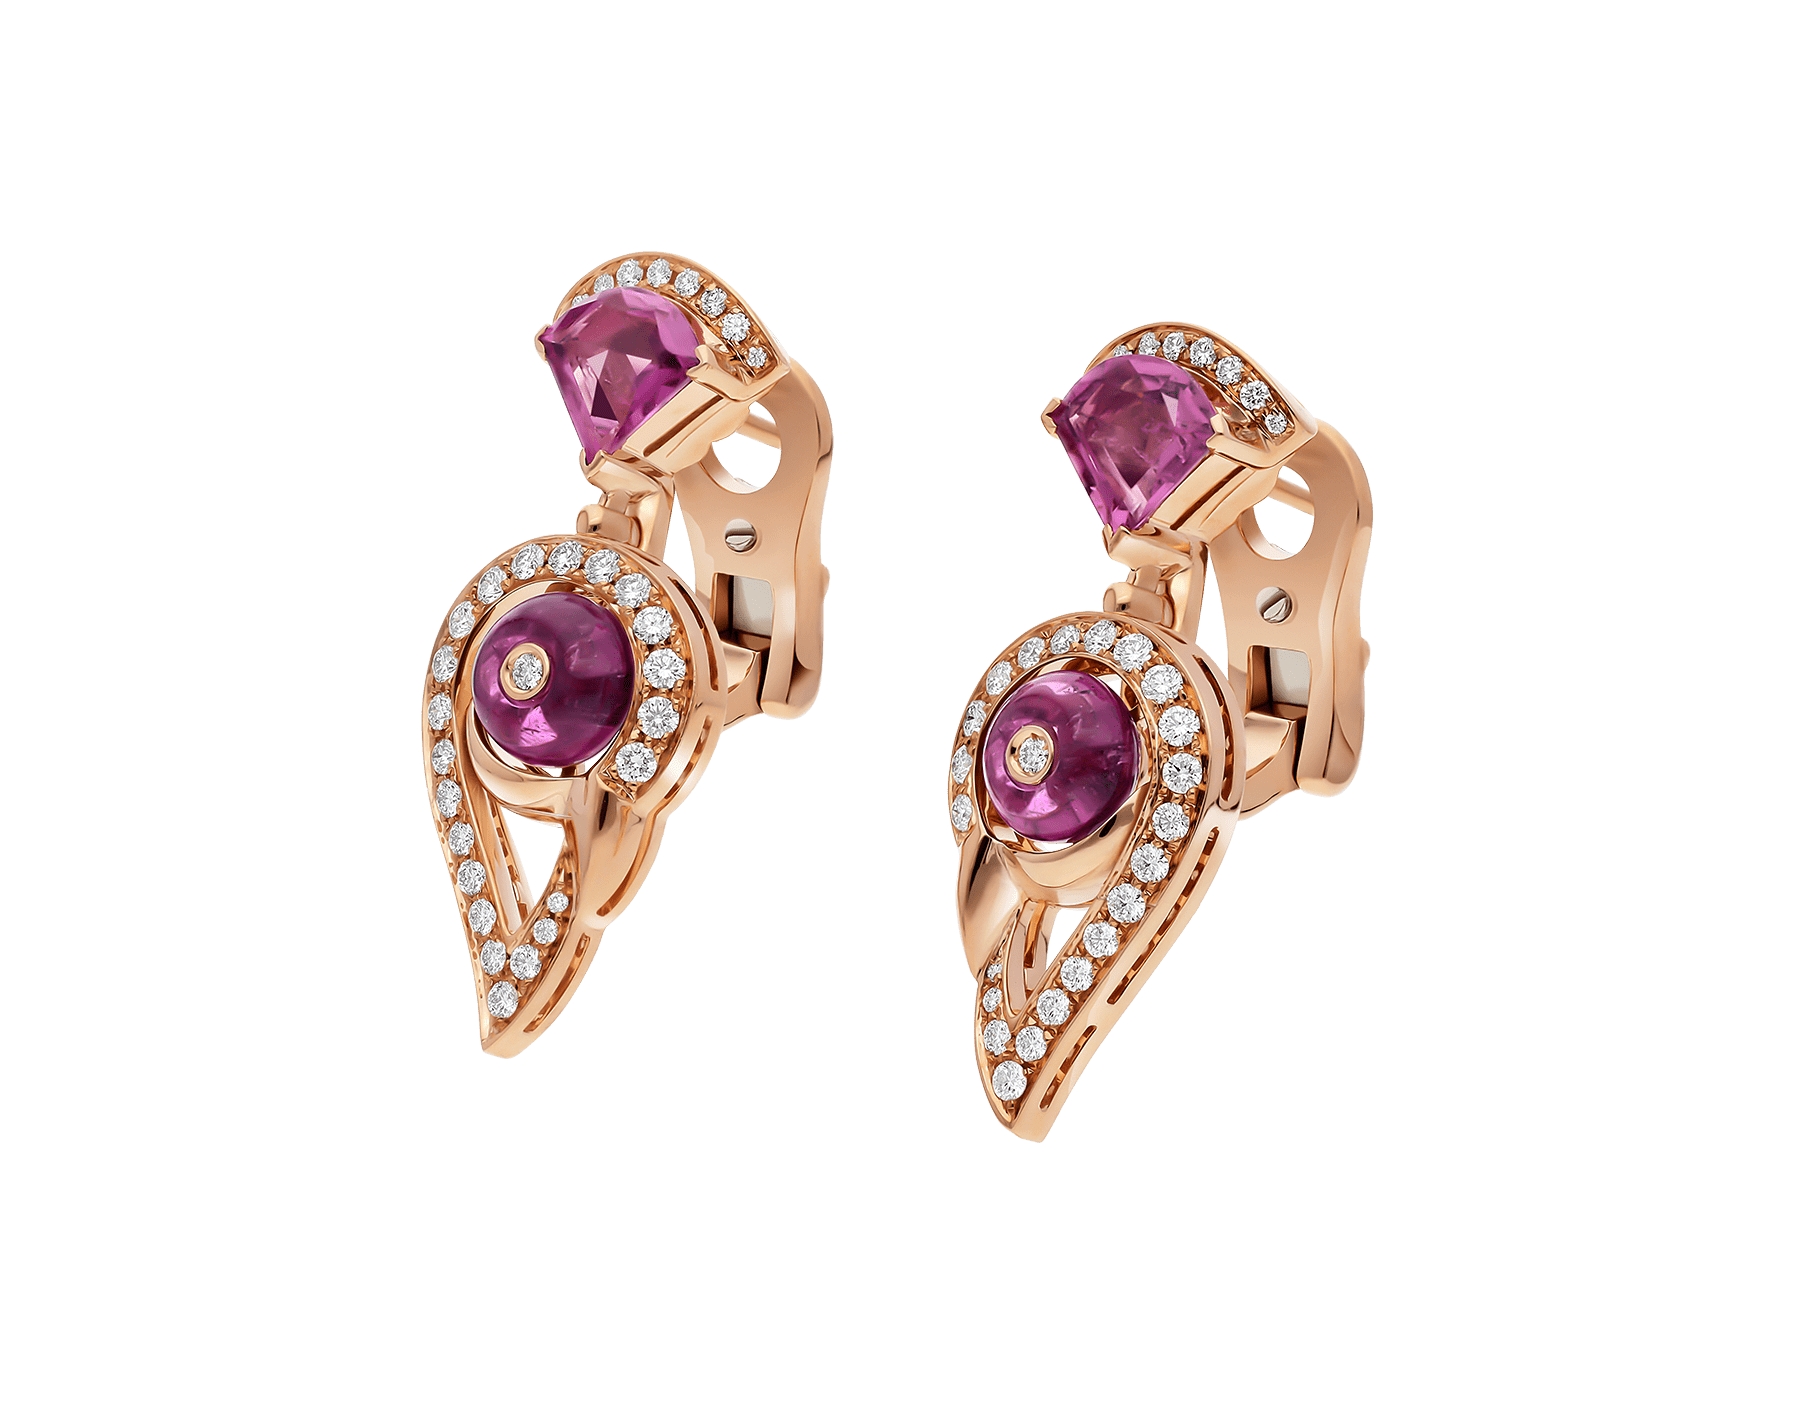 Boucles d'oreille DIVAS' DREAM en or rose 18 K serties de rubellite rose et tourmaline rose avec pavé diamants. 354079 image 2